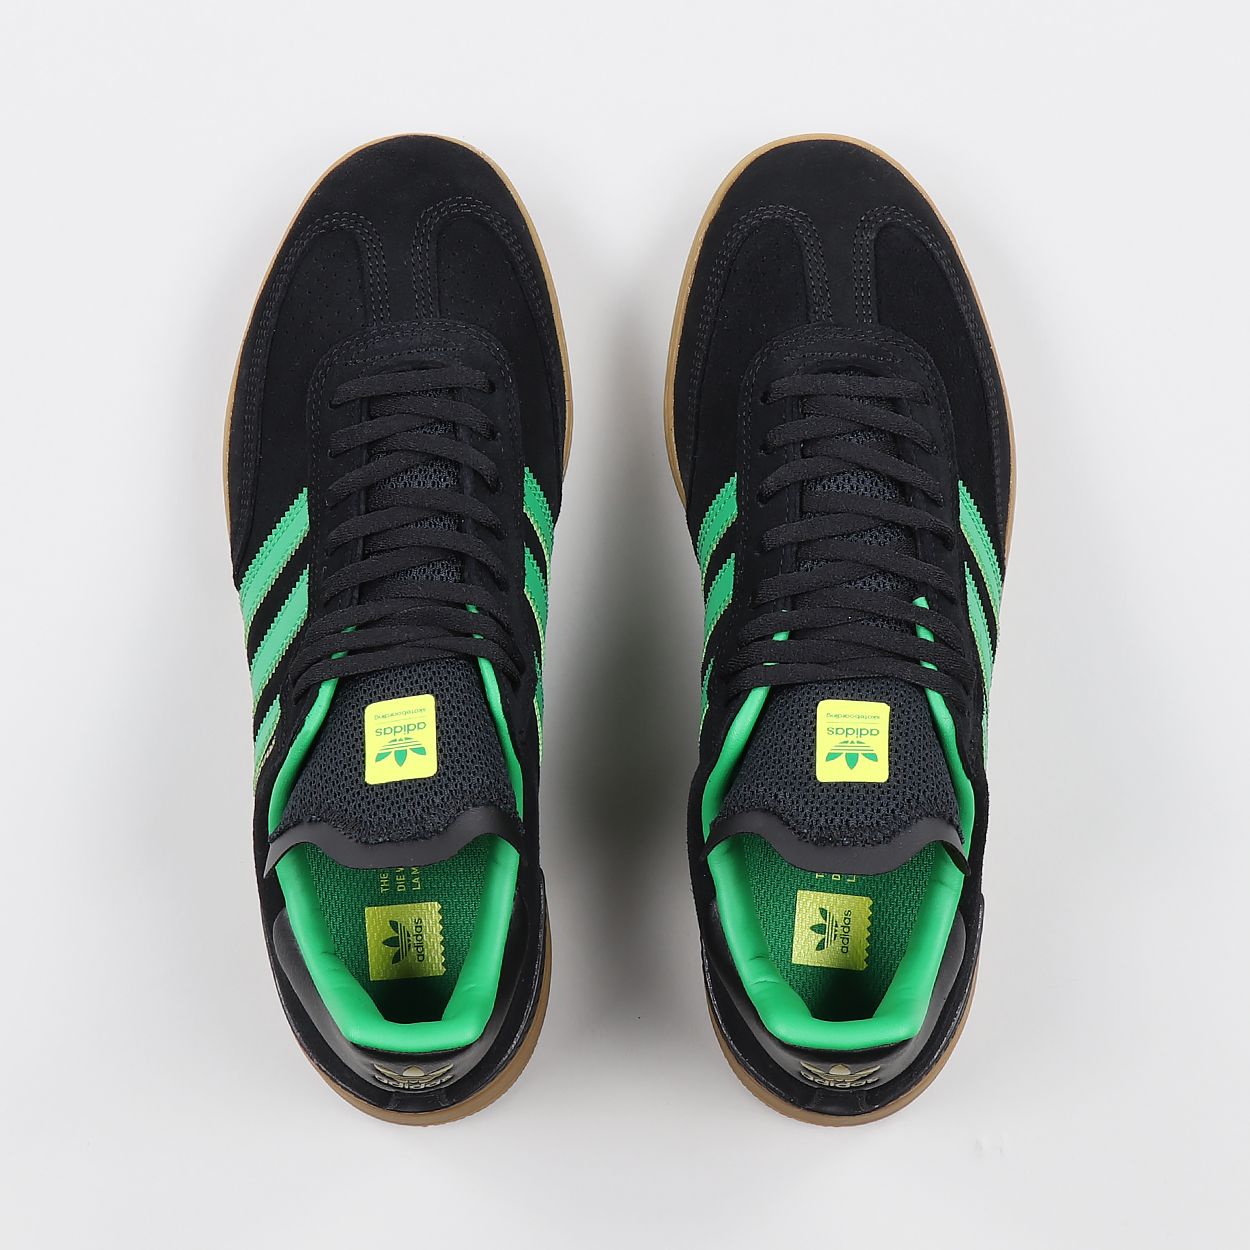 The time-tested Samba ADV has been given the Adi Skate treatment with tough  suede uppers and a light mesh tongue f4a85a3e9